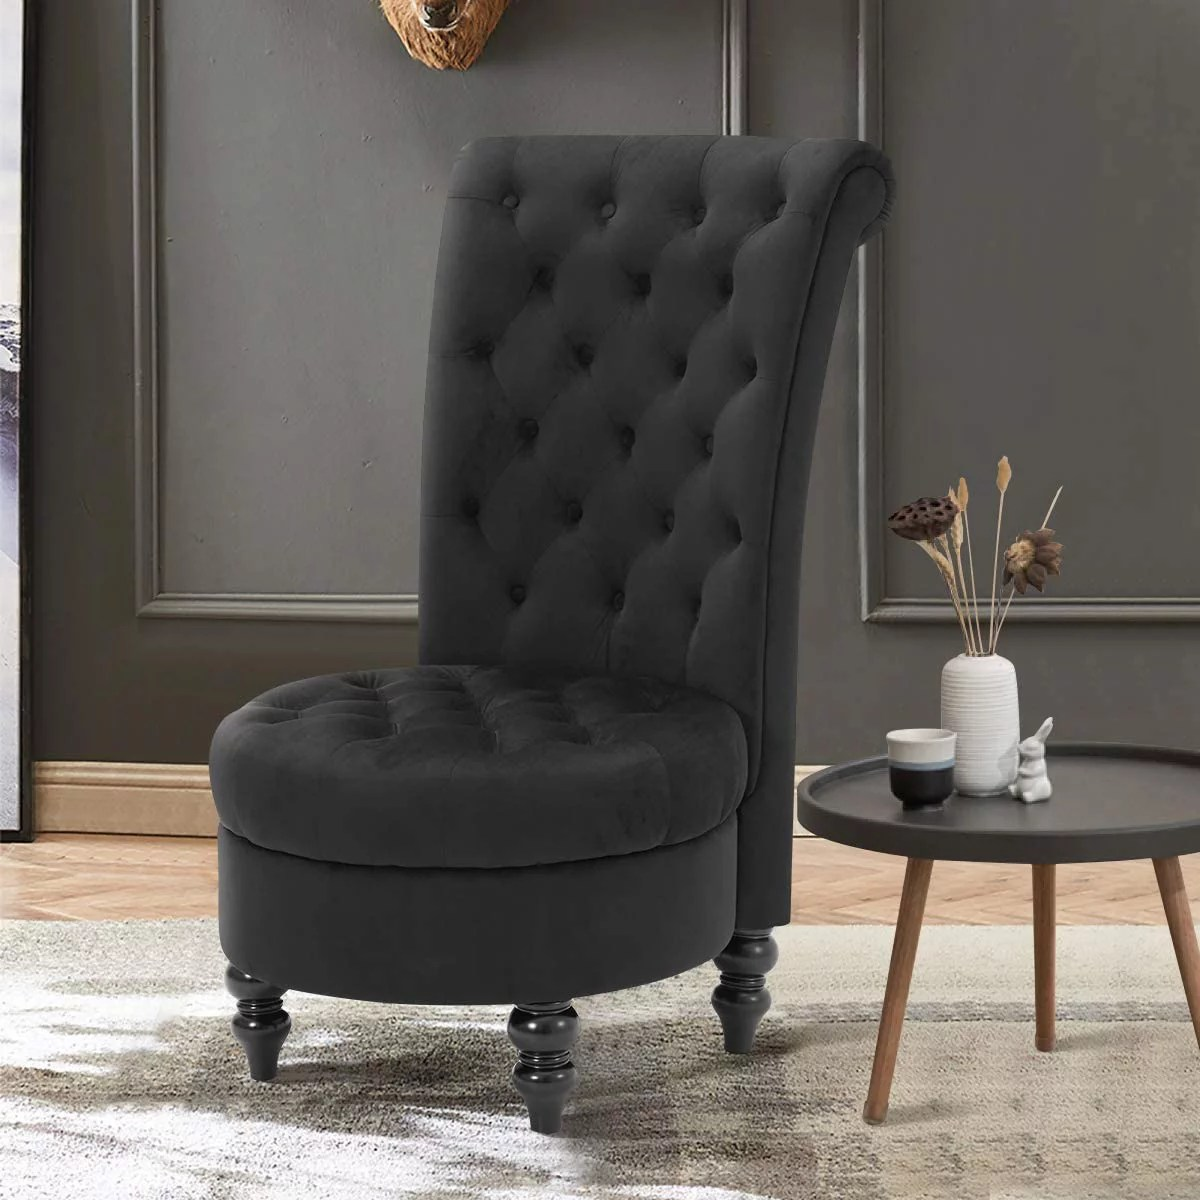 erommy high back accent chair retro armless sofa chair for bedroom living room deep seat chair with sturdy wood legs black